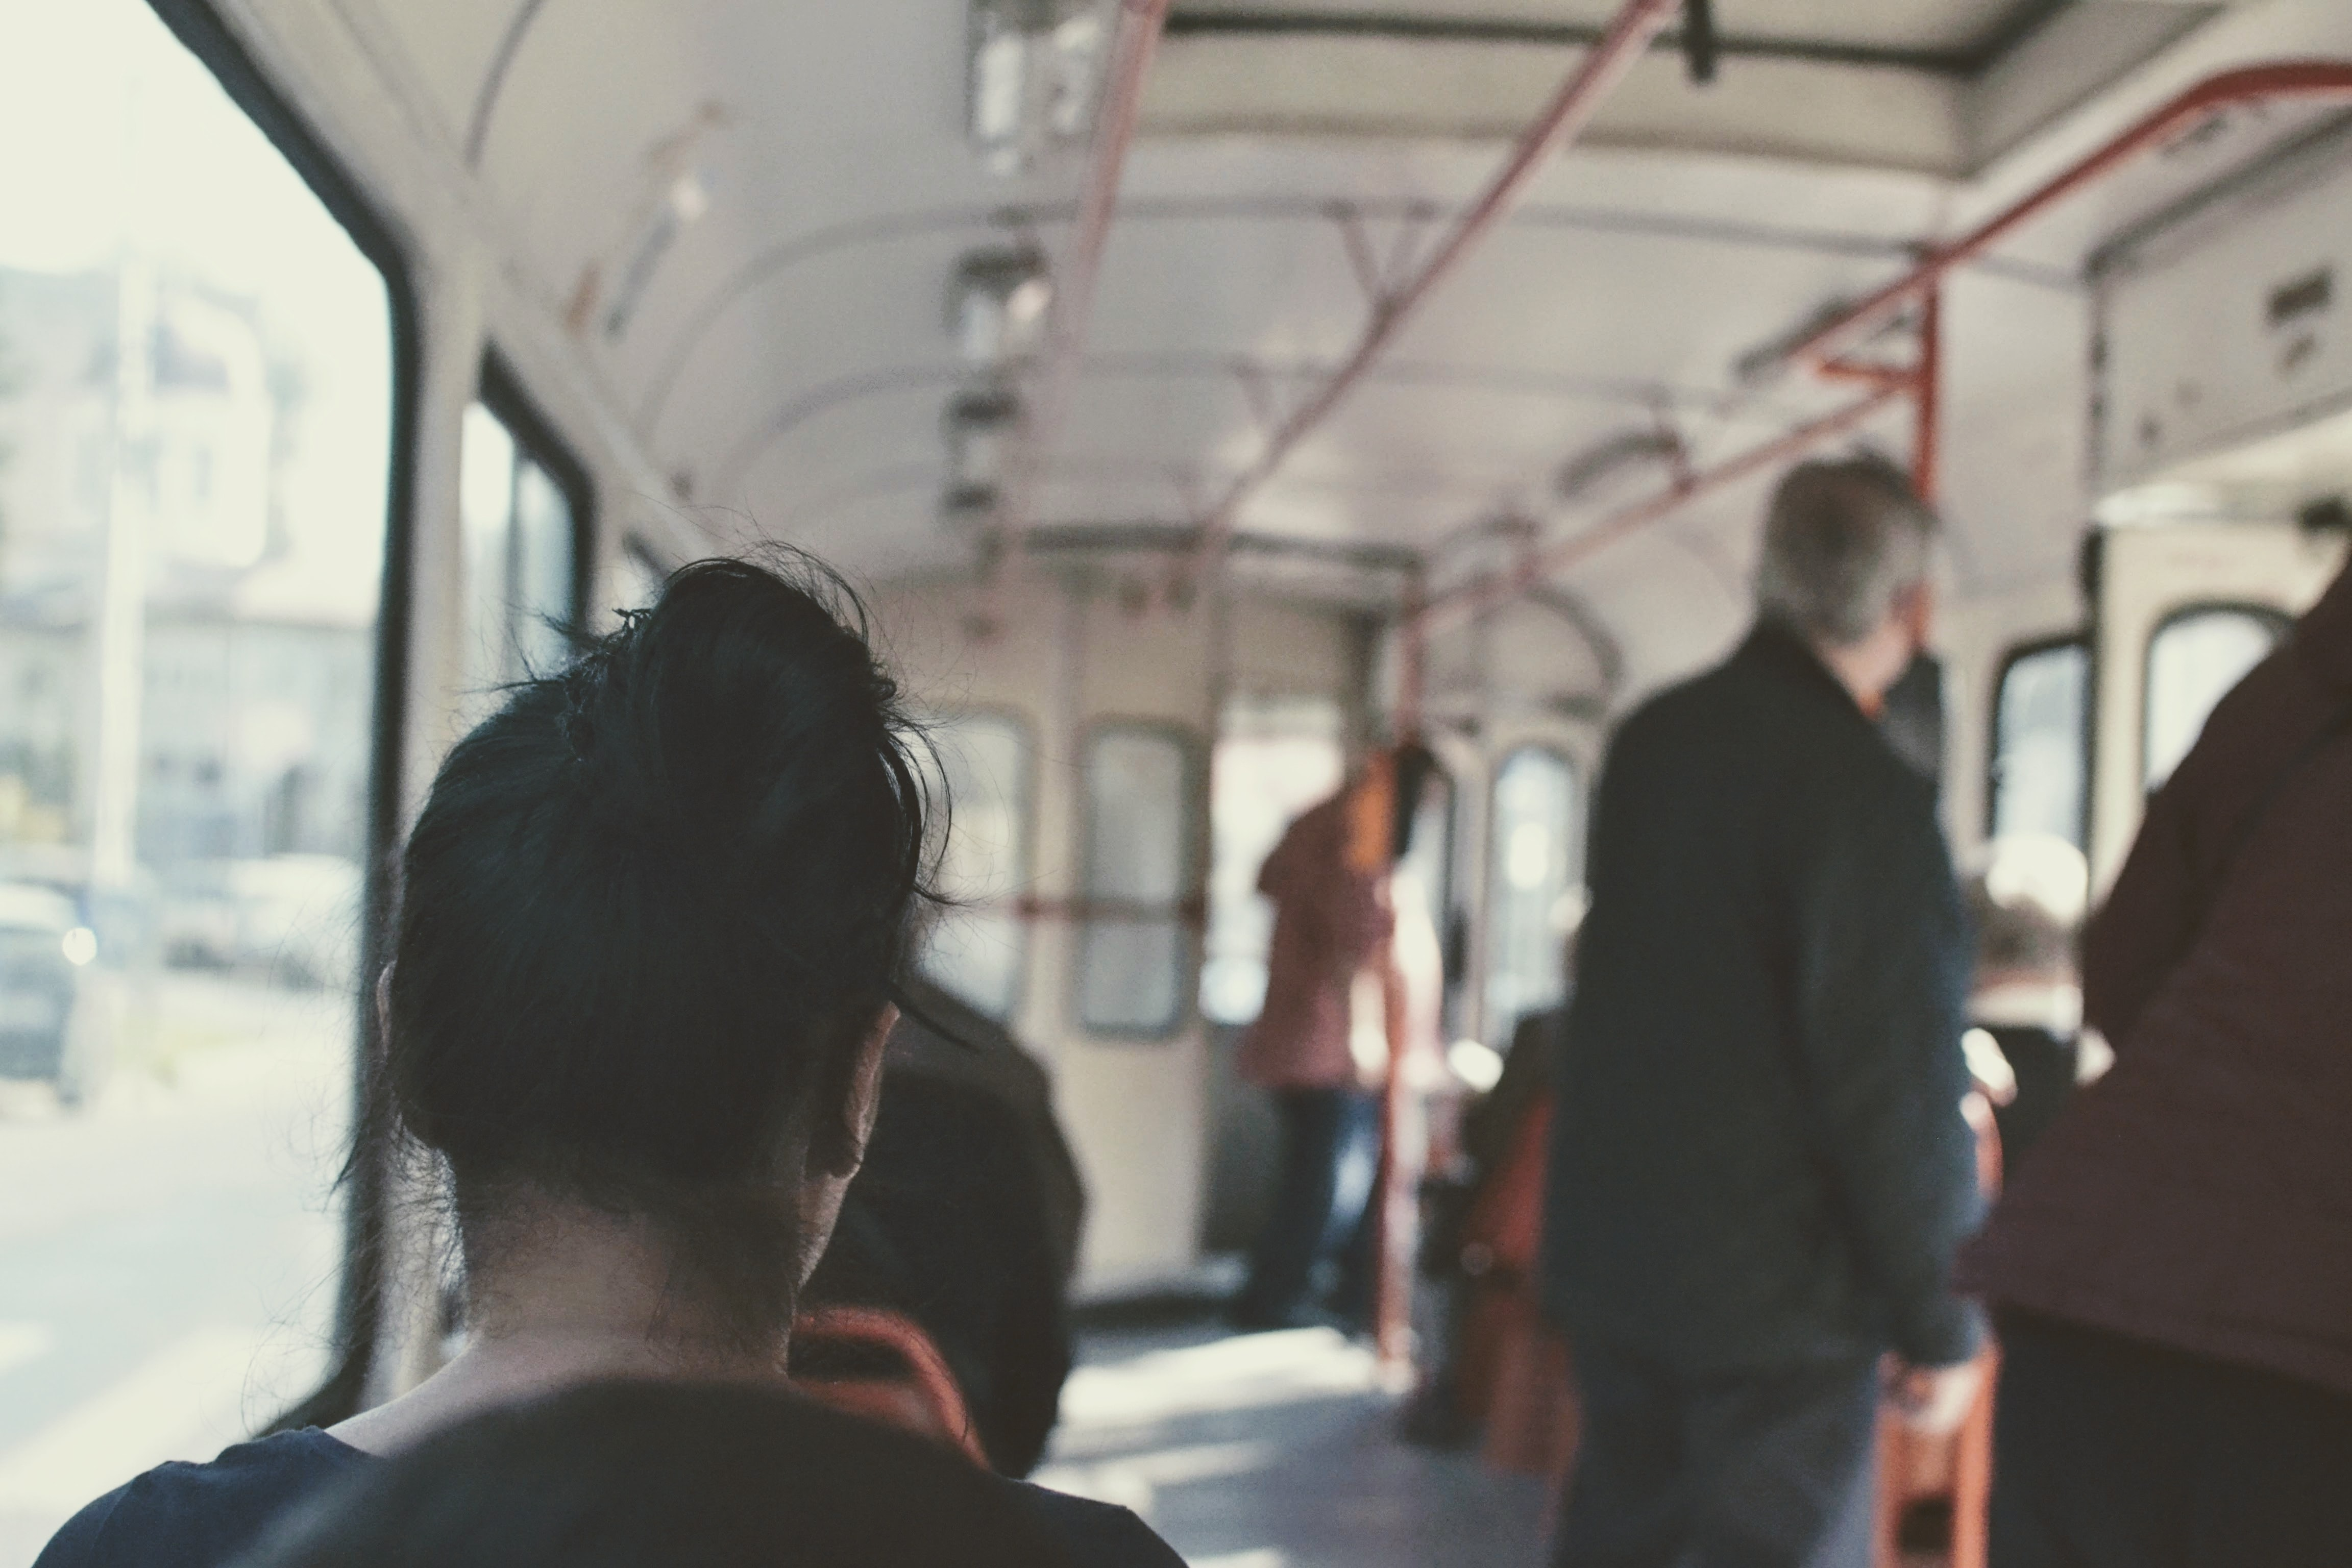 people sitting and standing in train